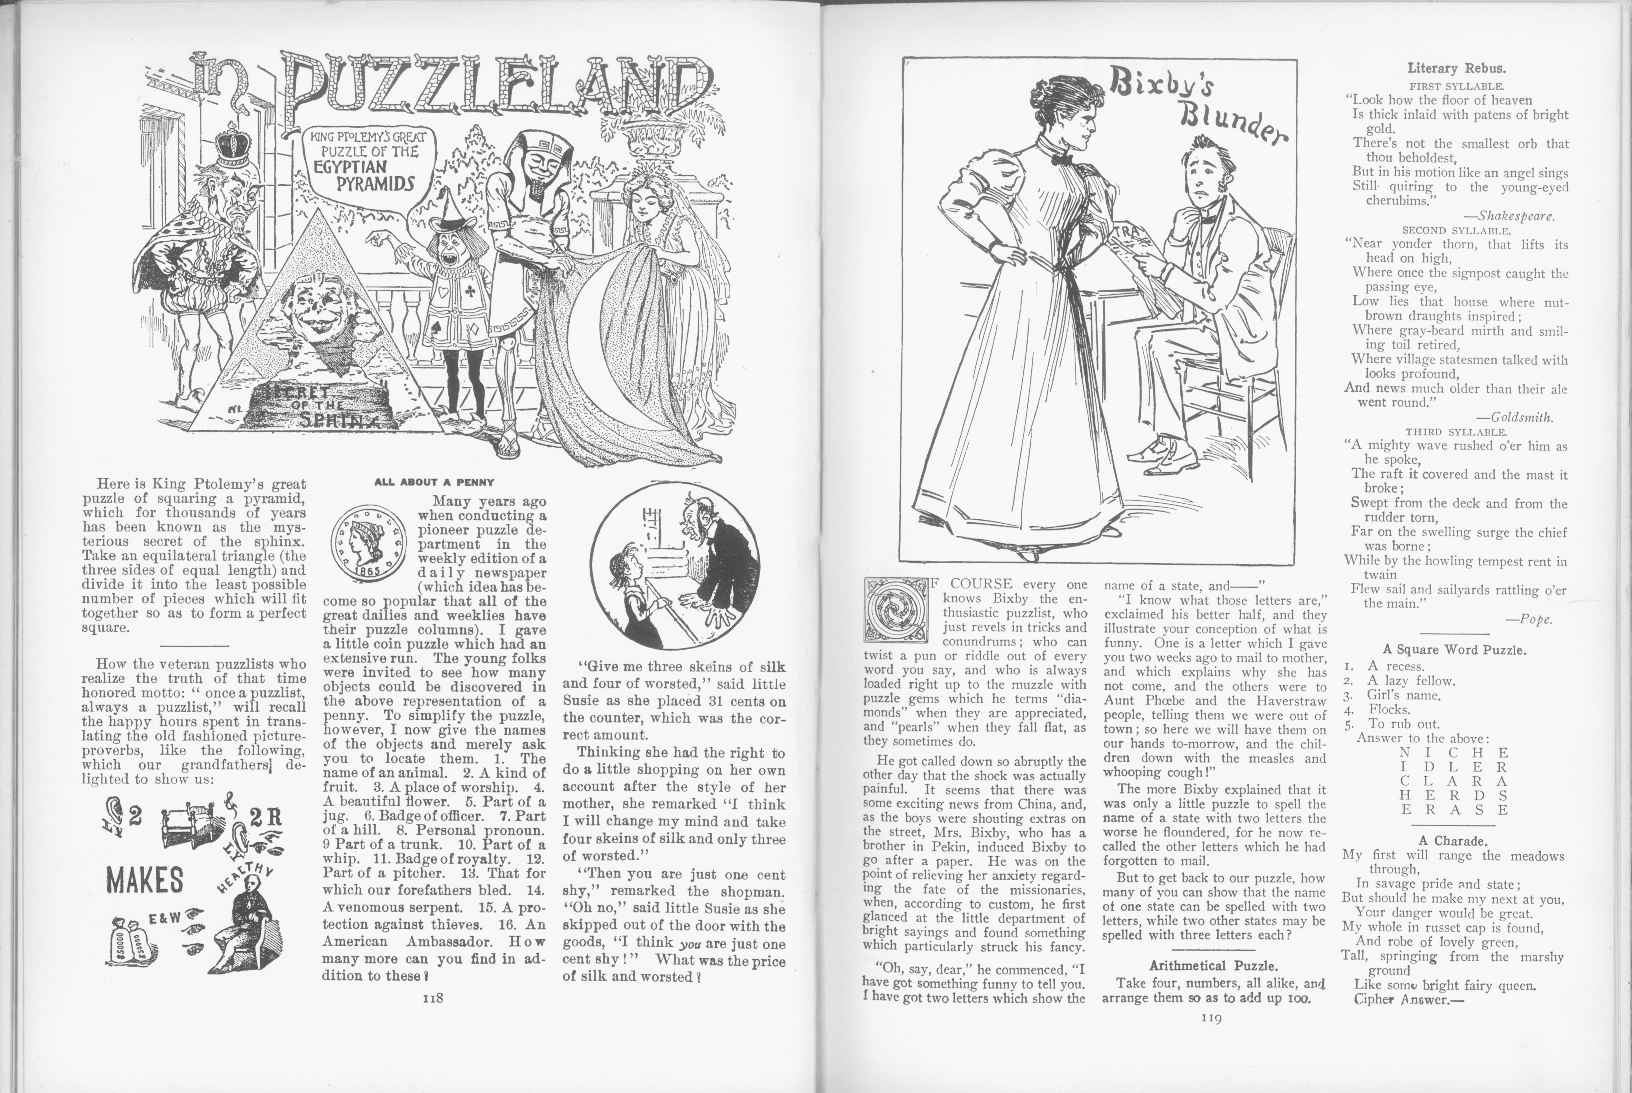 Sam Loyd - Cyclopedia of Puzzles - page 118-119